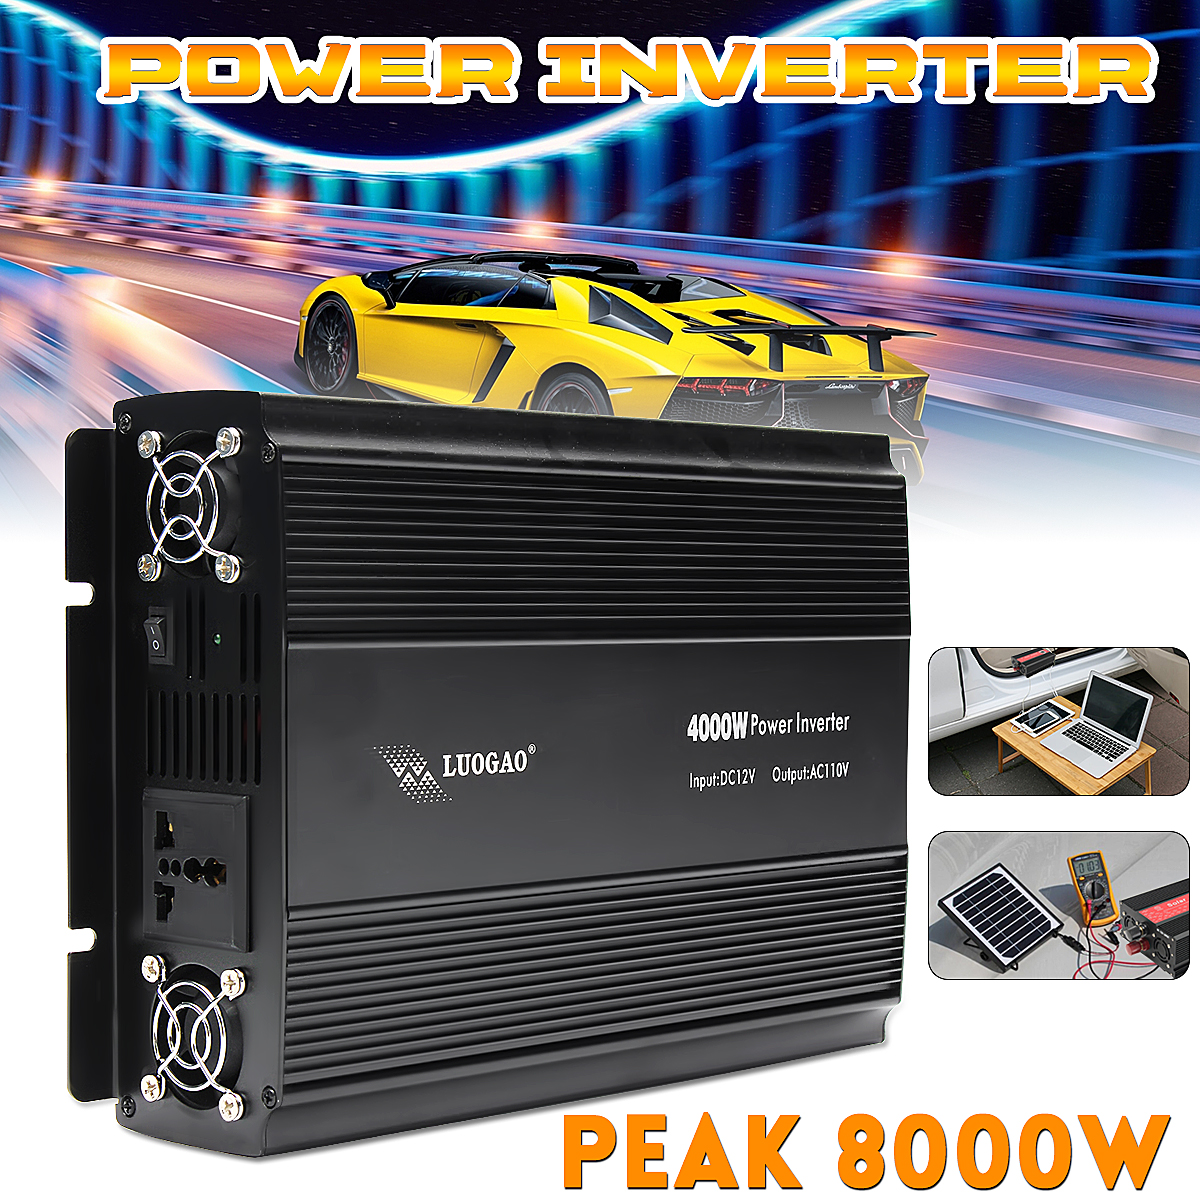 Car Inverter 12V 220V/110V 4000W Power Inverter Peak 8000W voltage transformer Adapter Charger Square Wave Modified Sine Wave